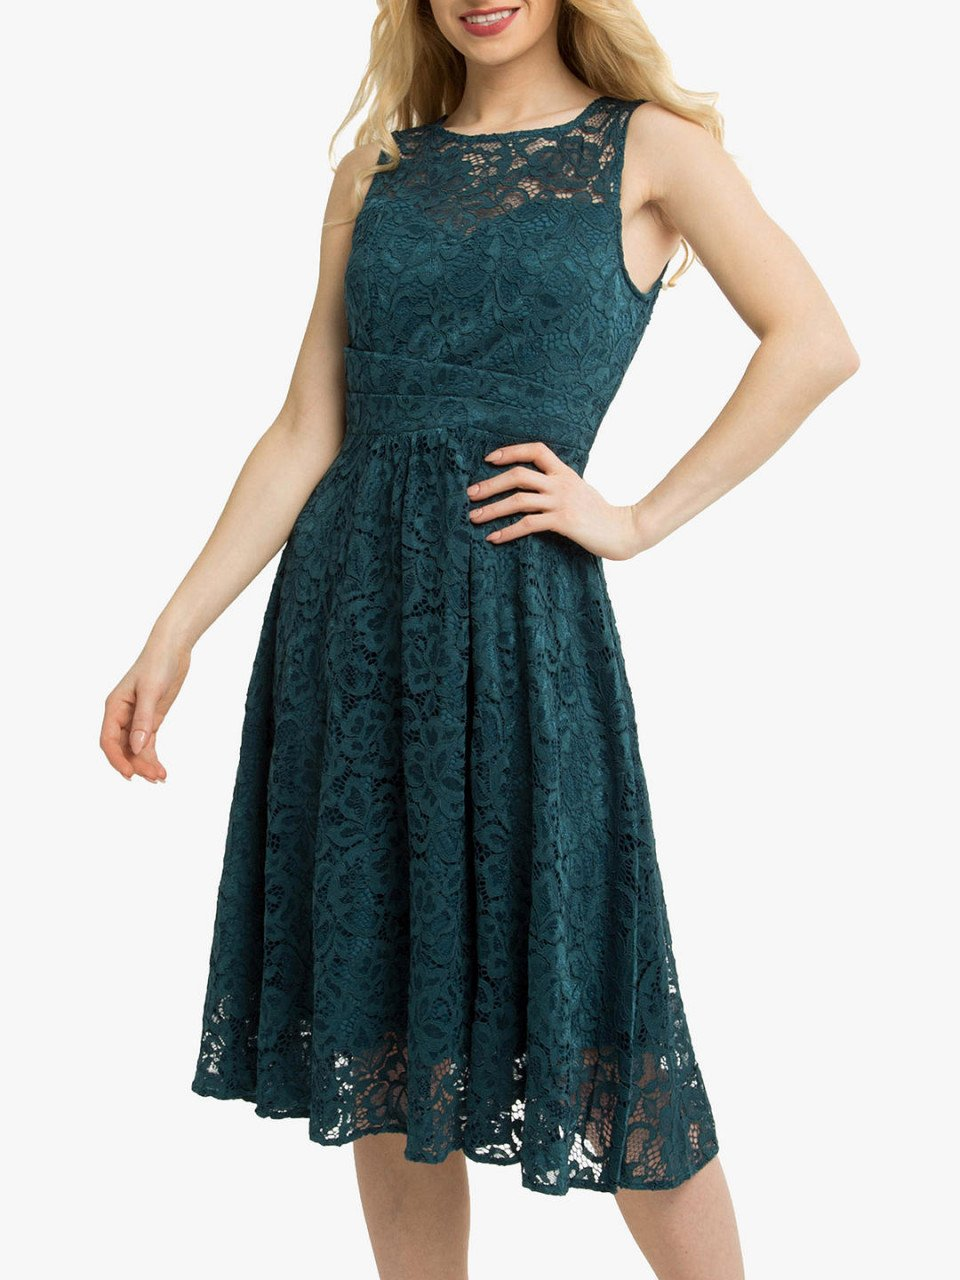 Jolie Moi Fit & Flare Lace Prom Dress, Dark Teal